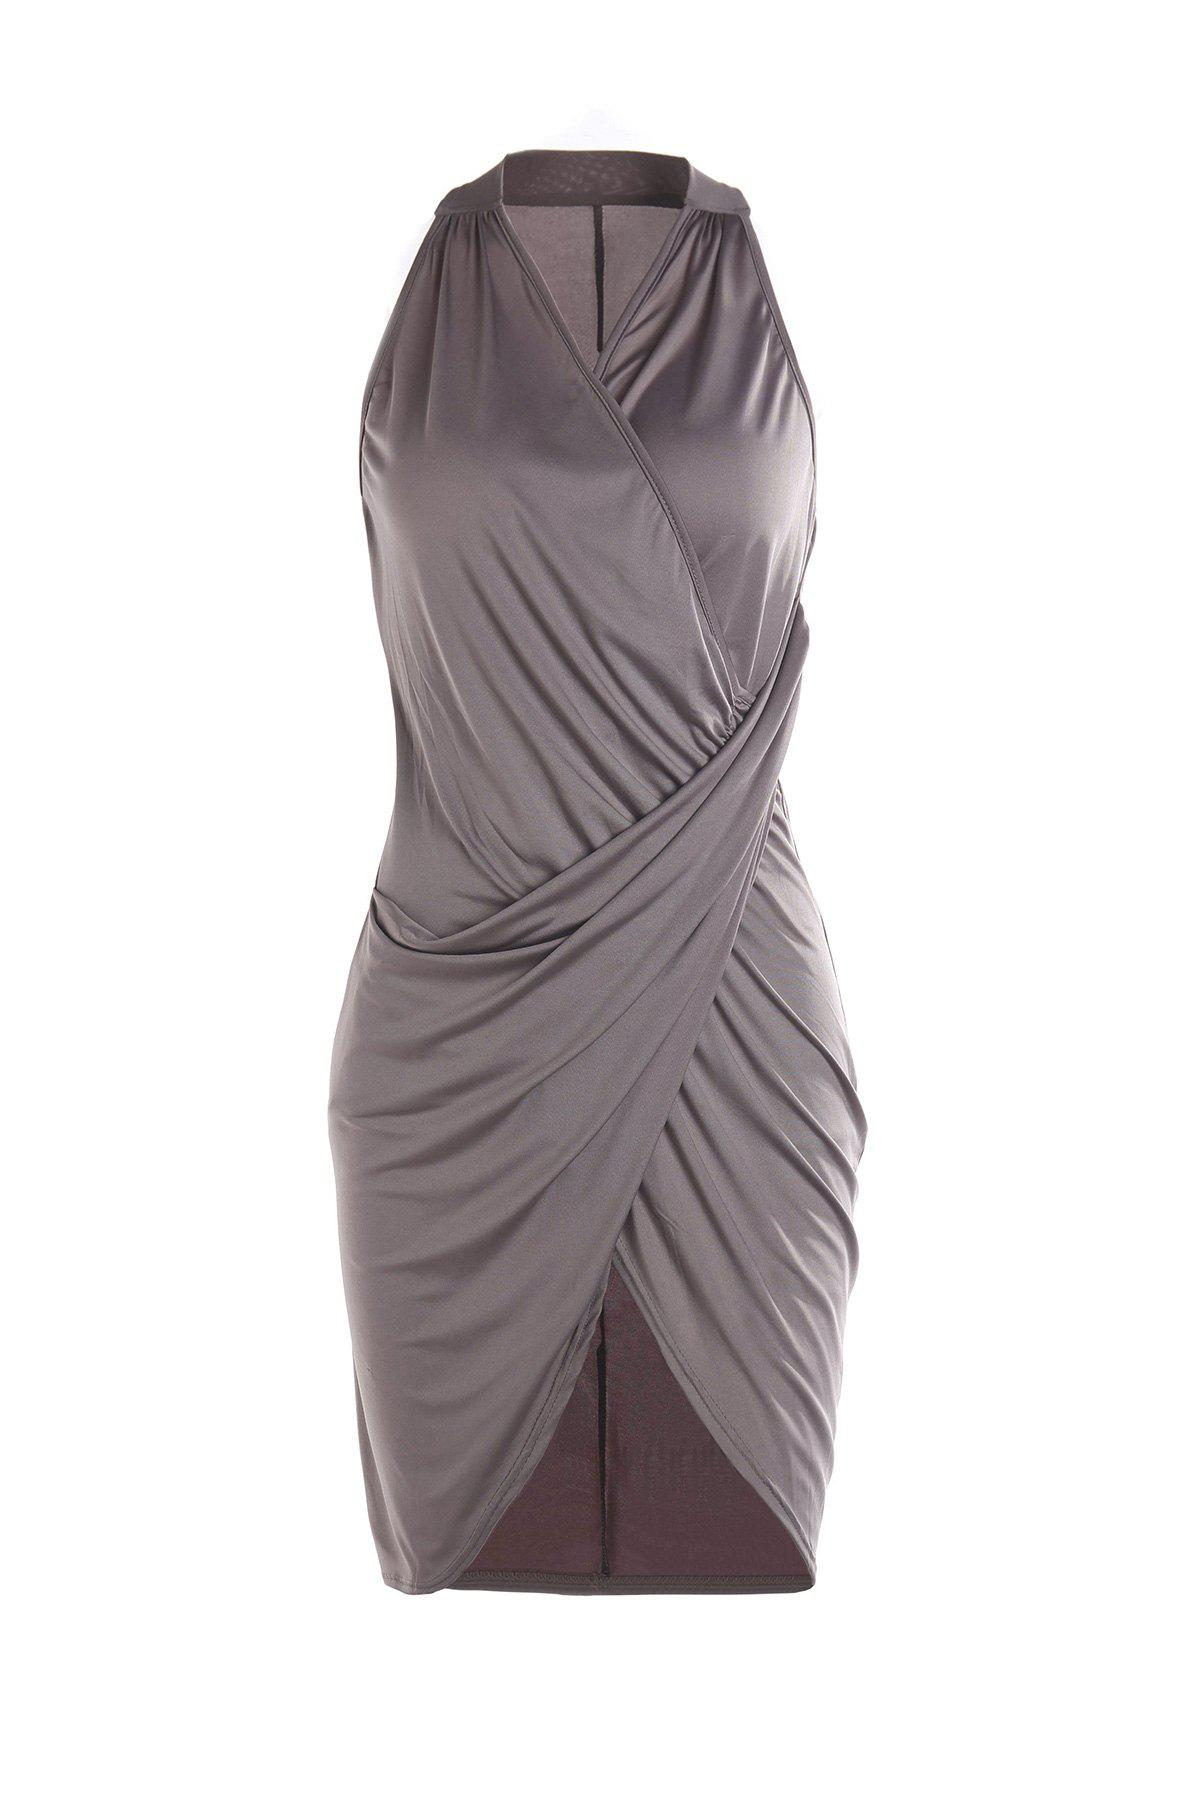 Rosegal / V-Neck Sleeveless Slit Midi Work Jersey Dress